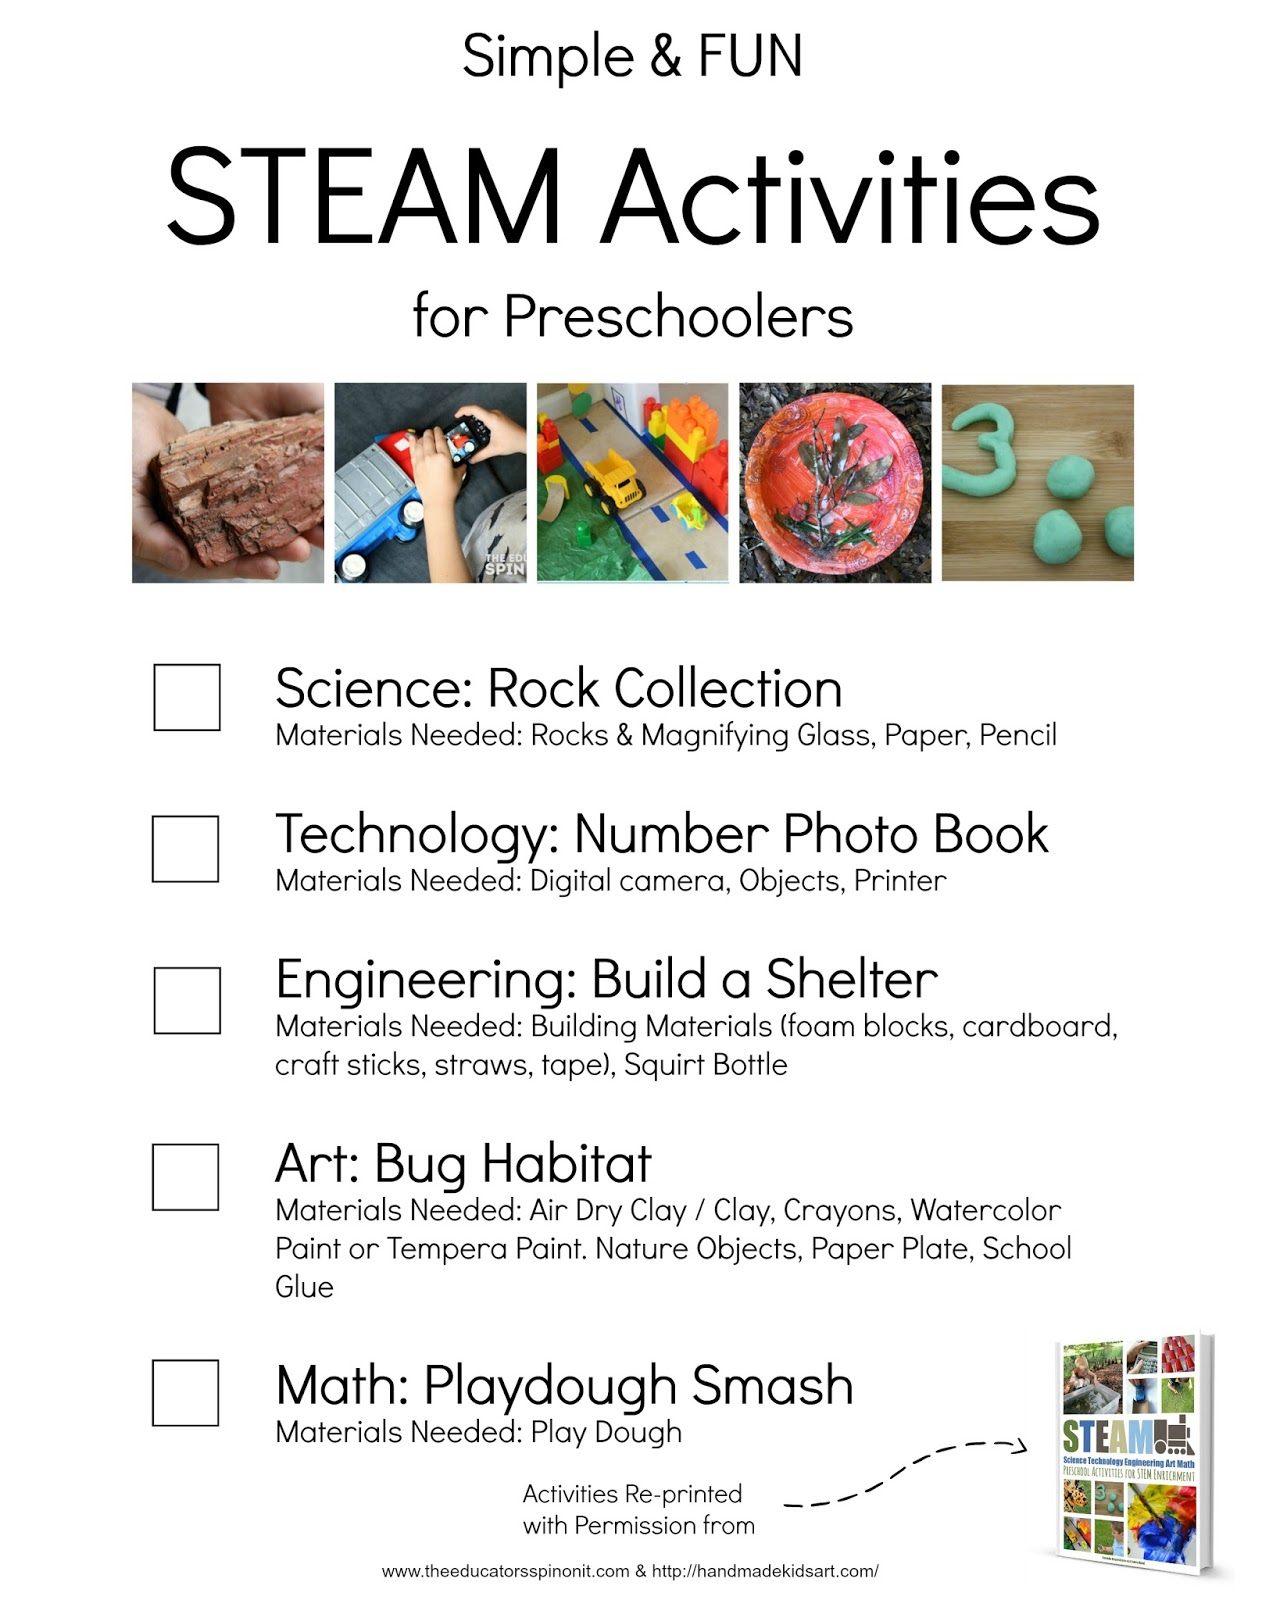 Simple and Fun STEAM activities for preschooler | STEM Activities for kids